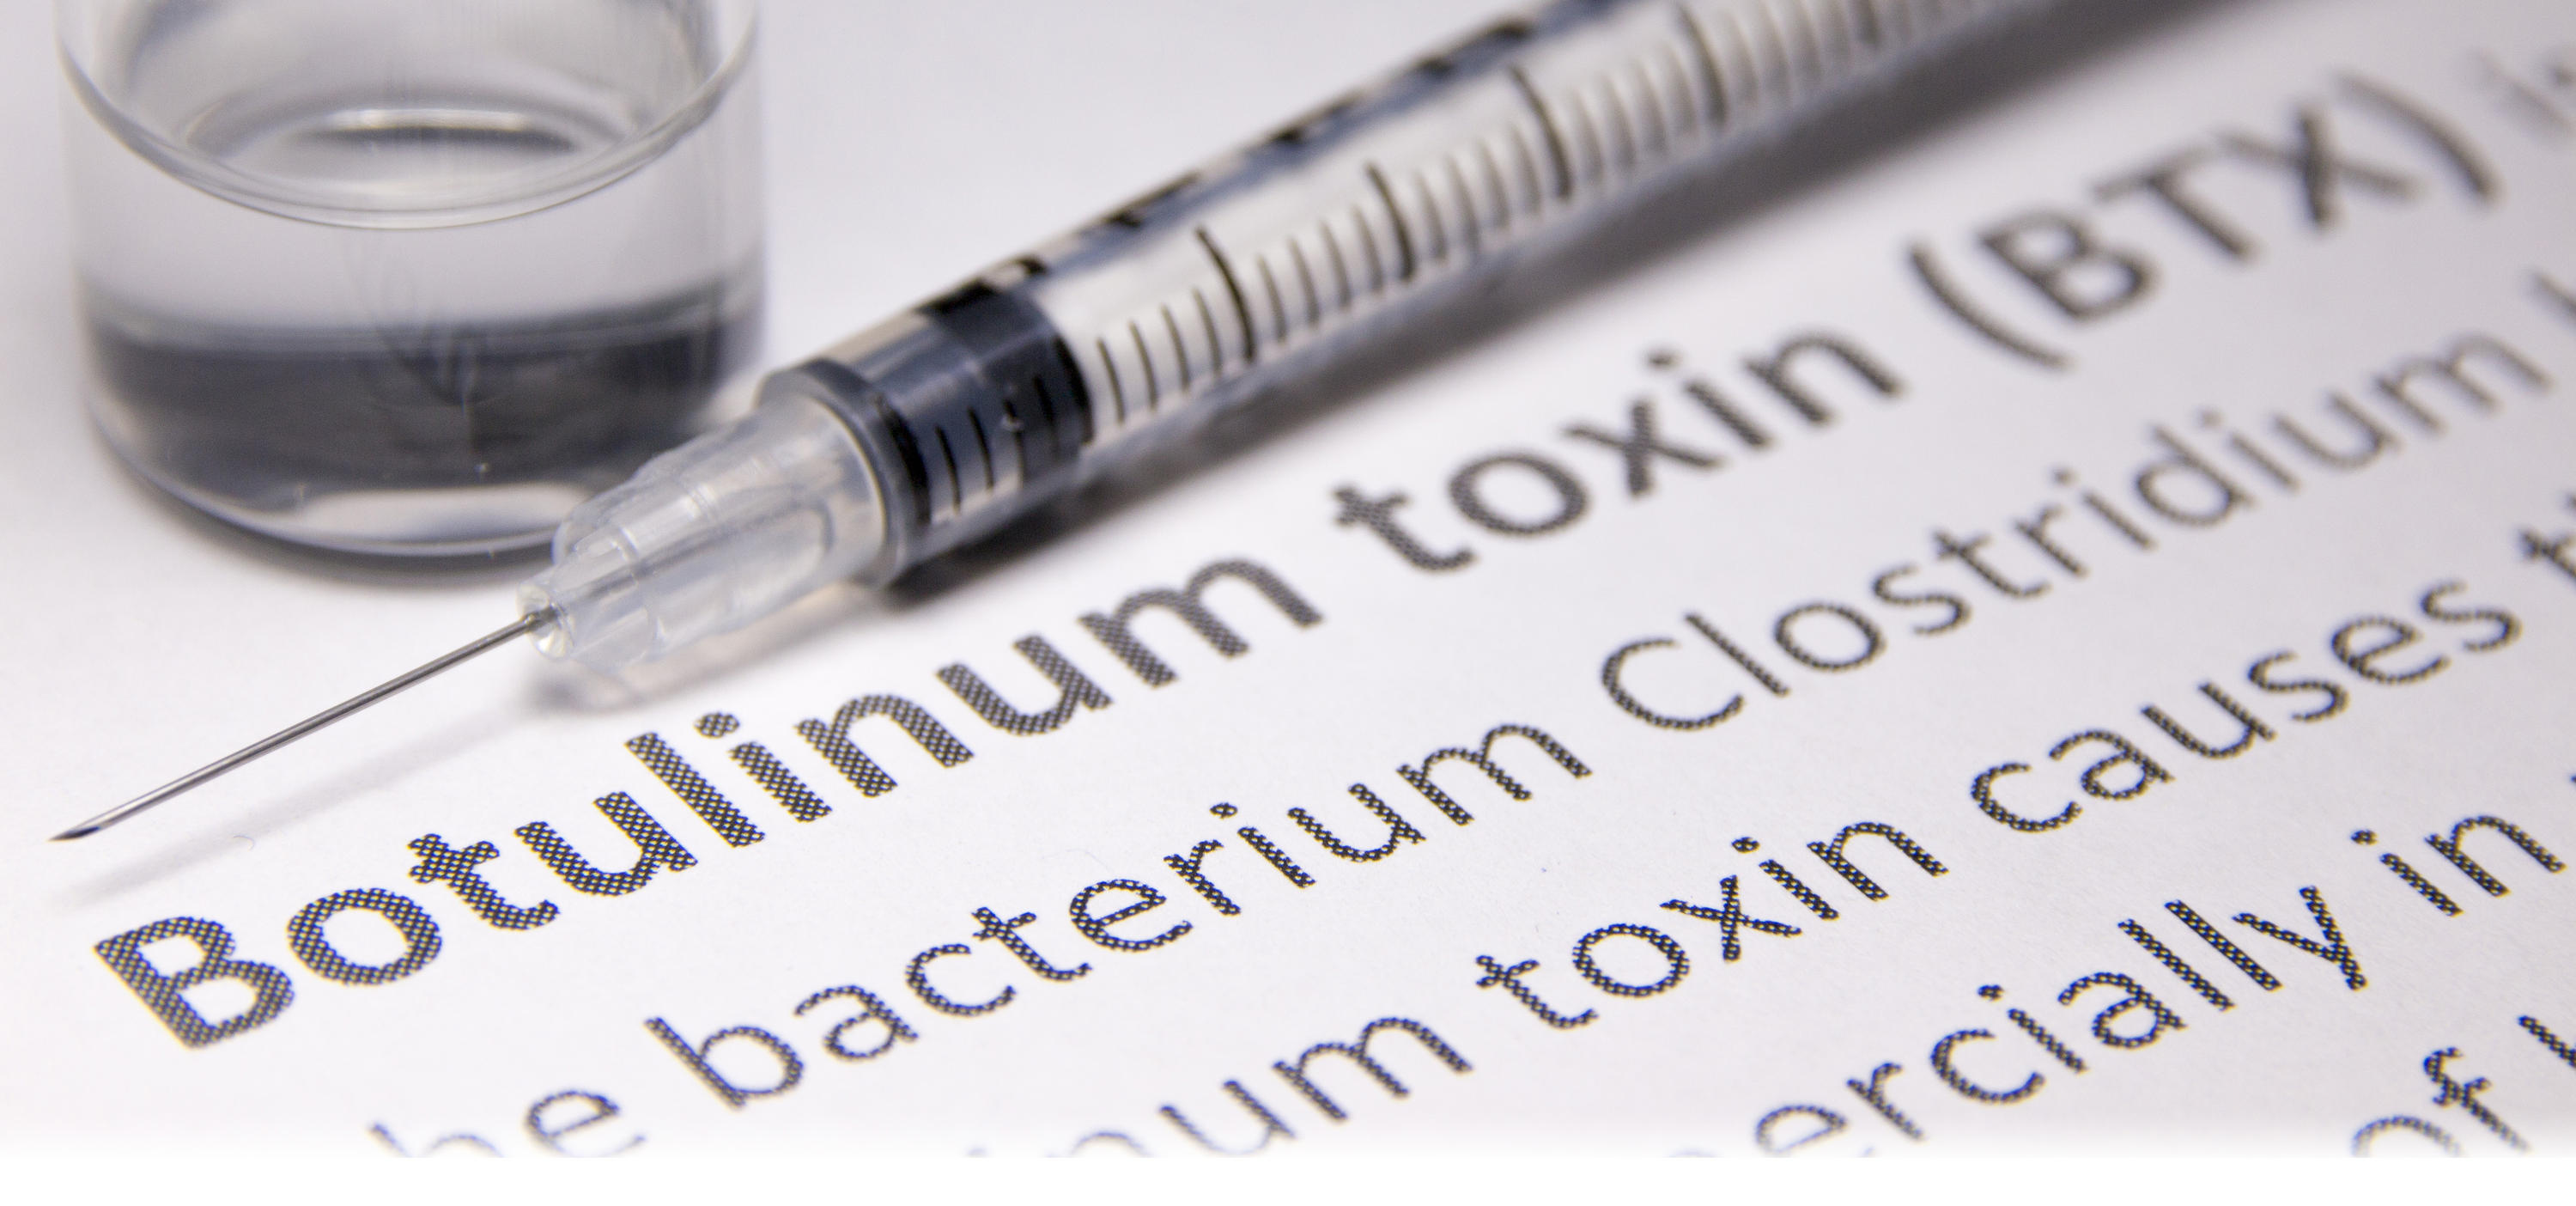 Needle with text saying botulium toxin.